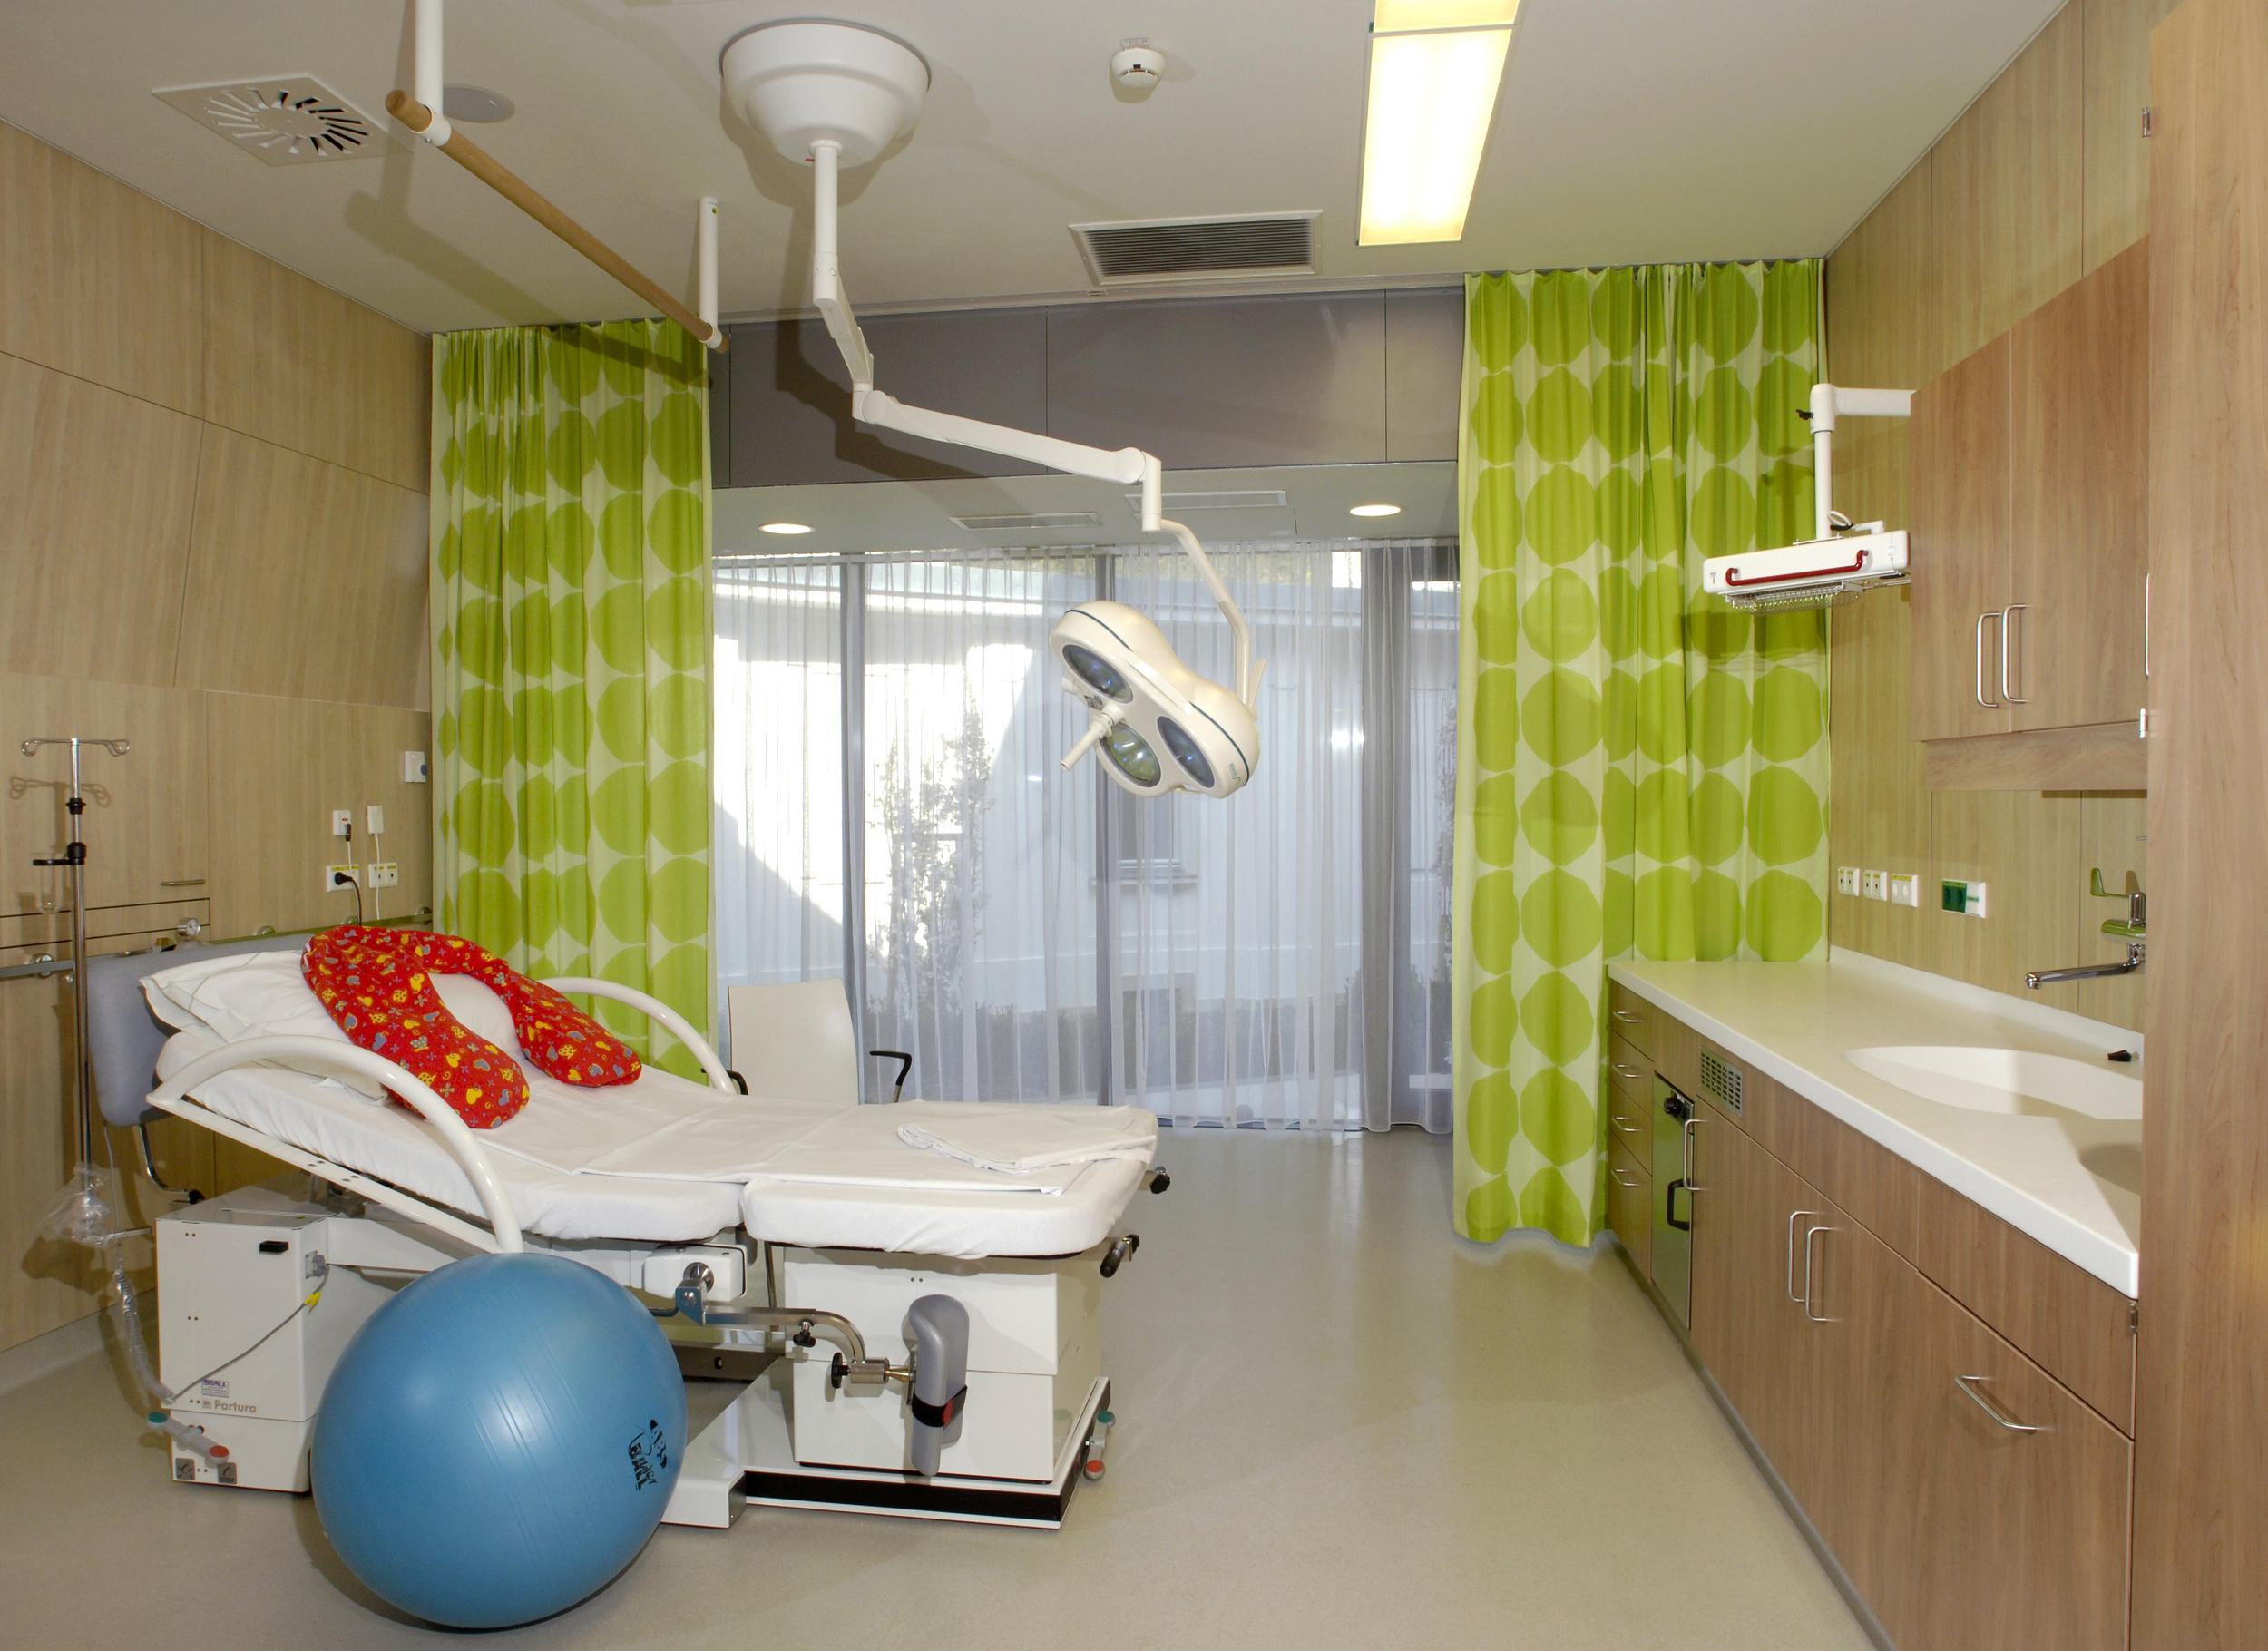 A typical labor and delivery room at LKH Graz Frauenklinik. Photo: Schwager/LKH-Univ. Klinikum Graz